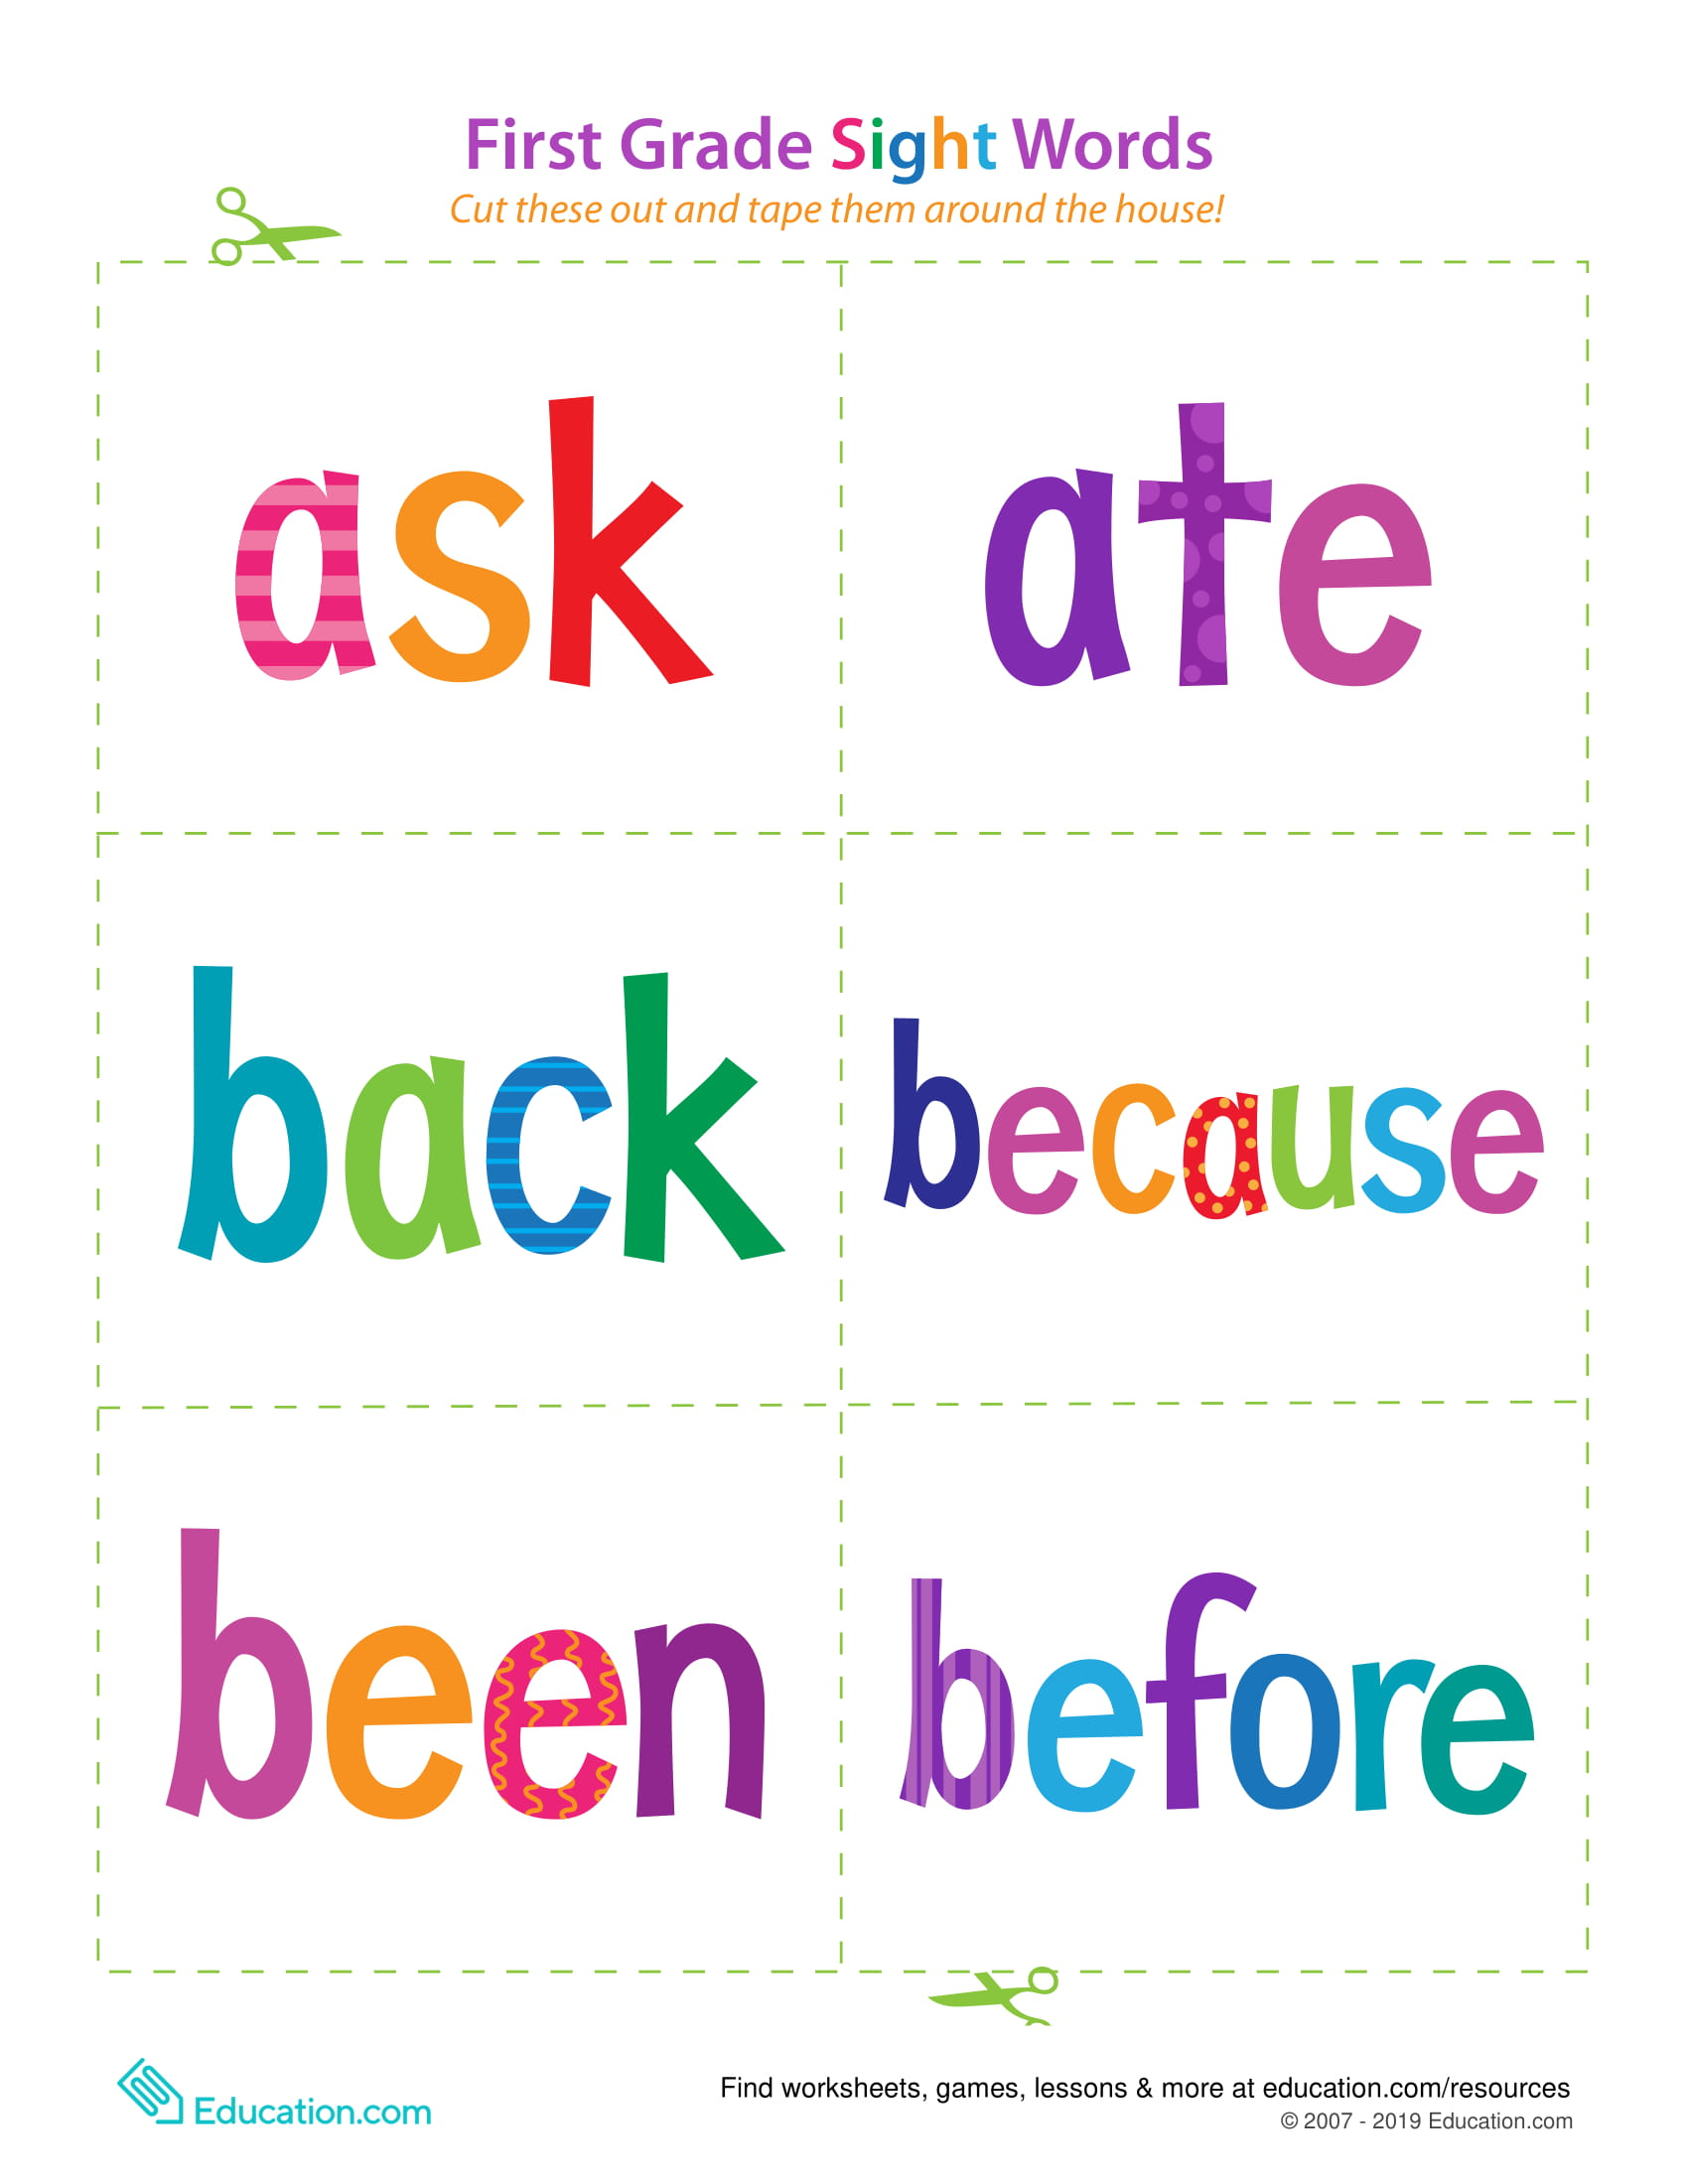 First Grade Sight Words Ask Before